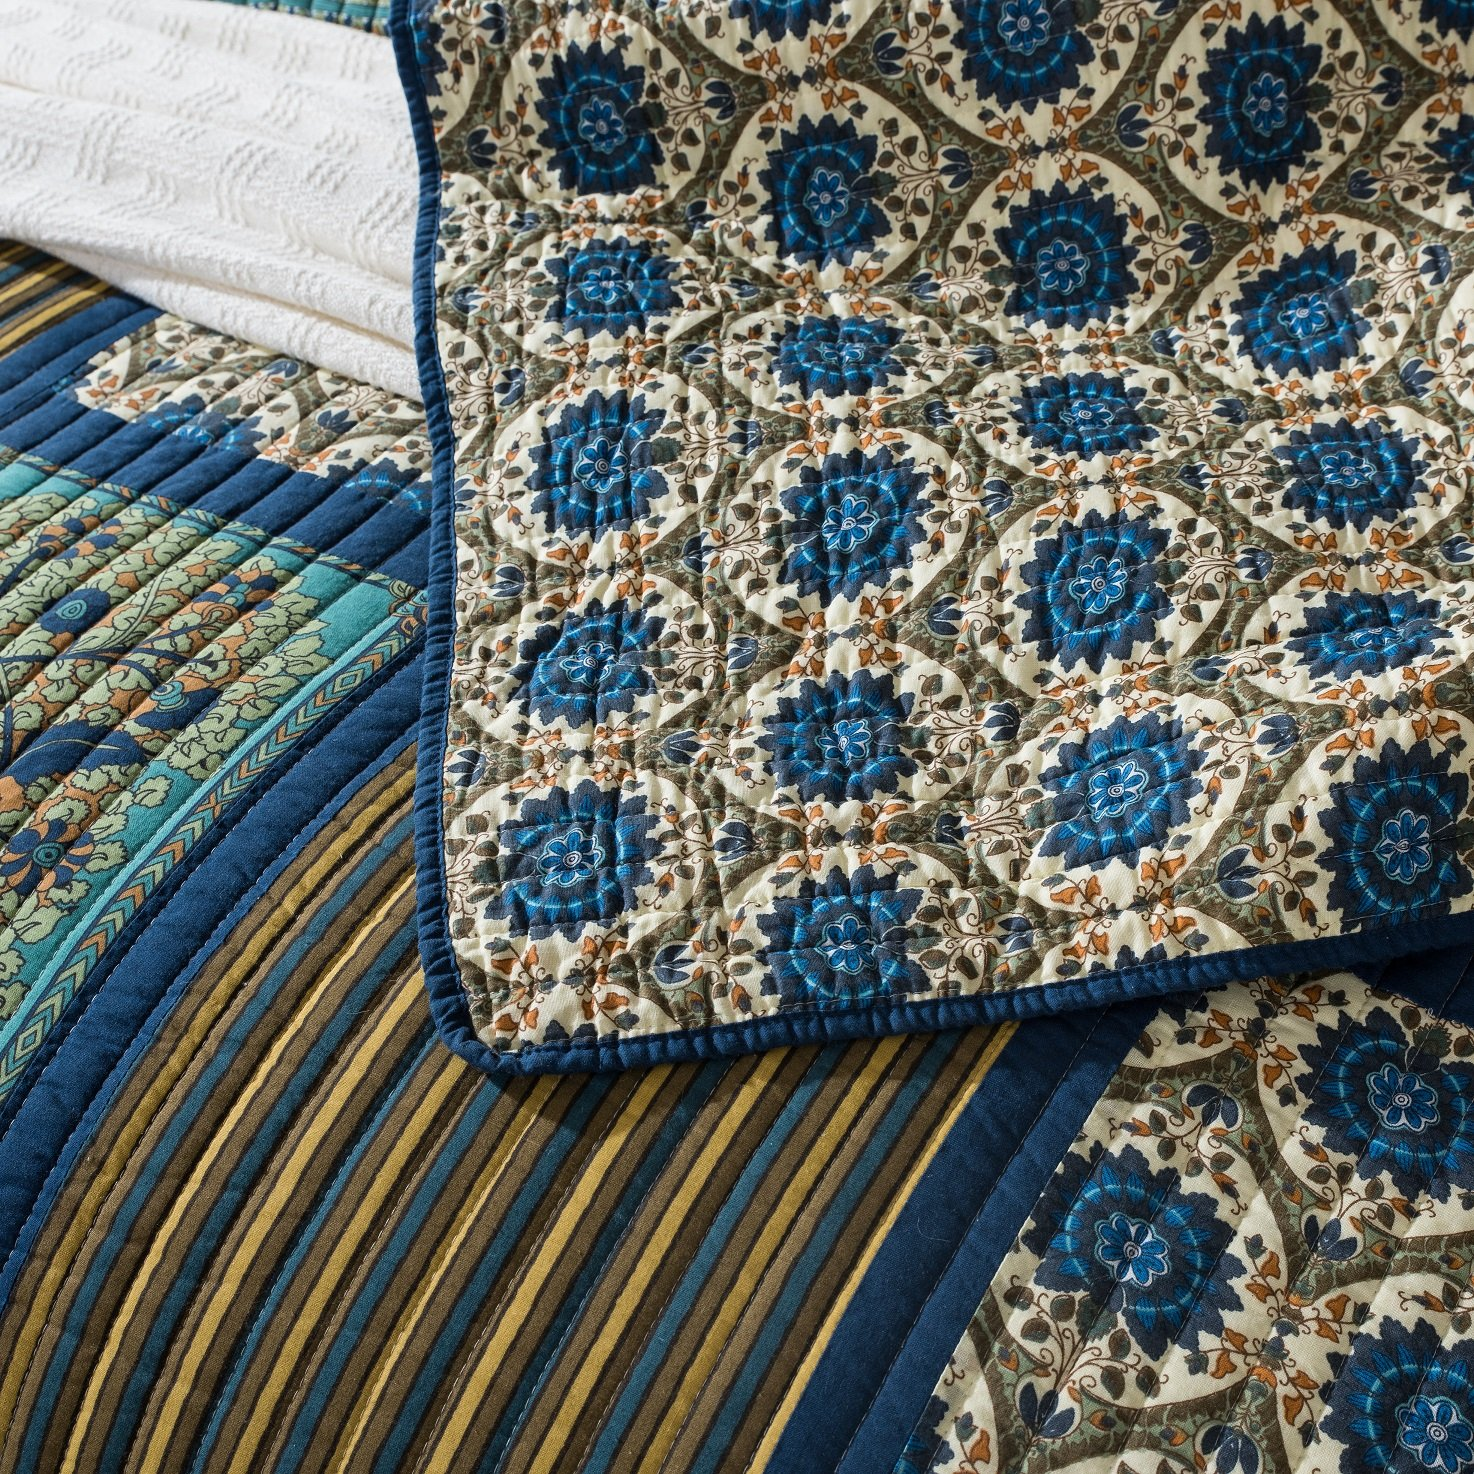 Tache Home Fashion Elegant Striped Forest Patchwork Quilted Coverlet Bedspread Set - Bright Vibrant Multi Colorful Dark Navy Blue Floral Print - Queen - 3-Pieces by Tache Home Fashion (Image #3)